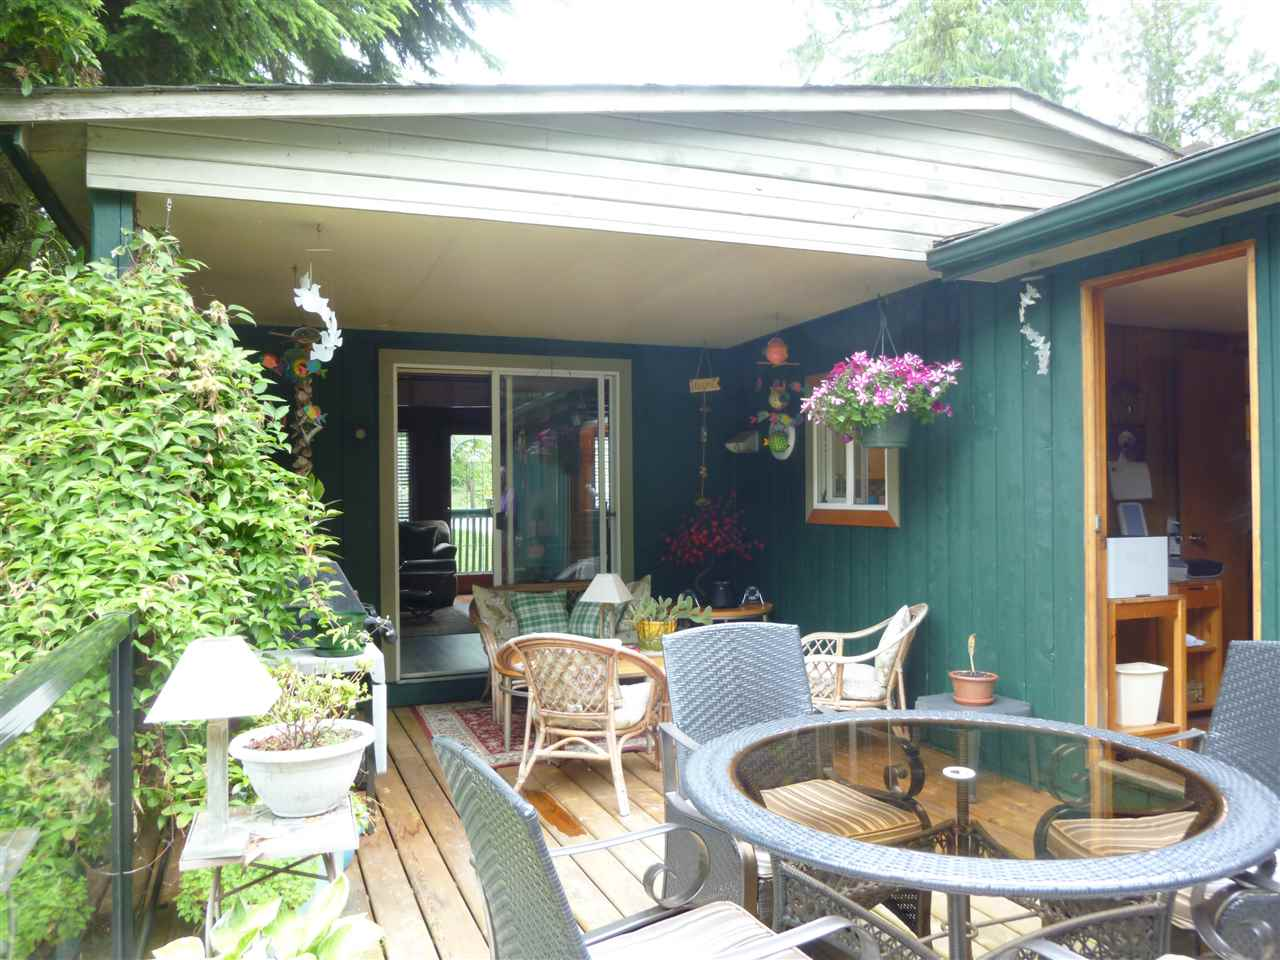 "Photo 6: Photos: 6441 NORWEST BAY Road in Sechelt: Sechelt District House for sale in ""WEST SECHELT"" (Sunshine Coast)  : MLS® # R2080690"